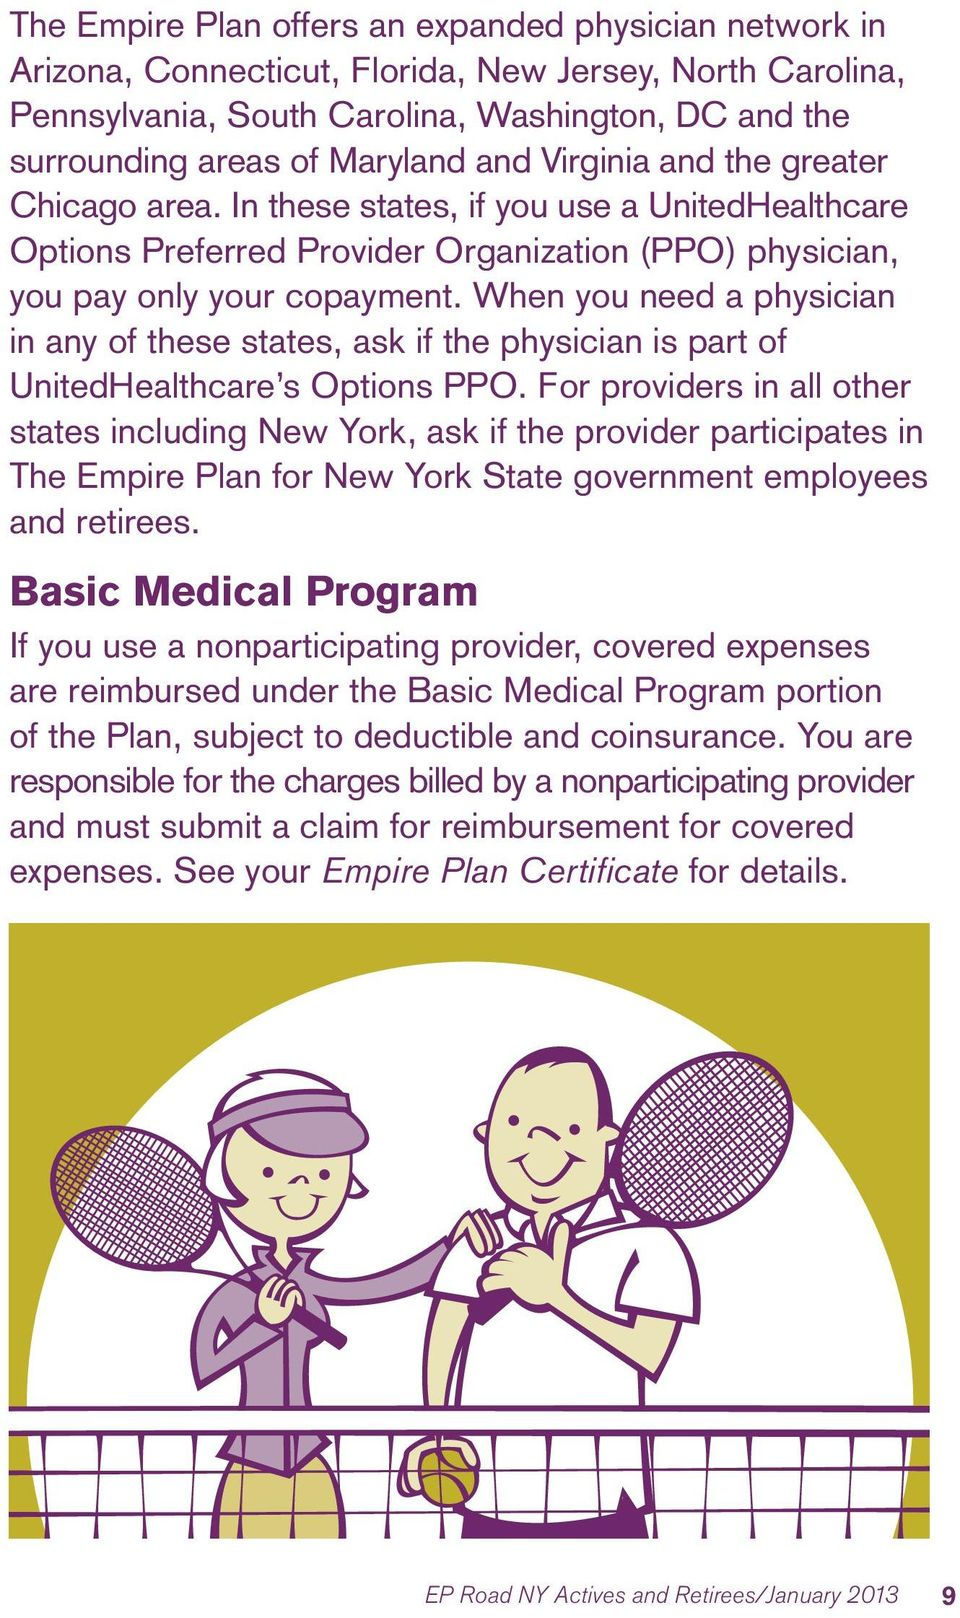 When you need a physician in any of these states, ask if the physician is part of UnitedHealthcare s Options PPO.